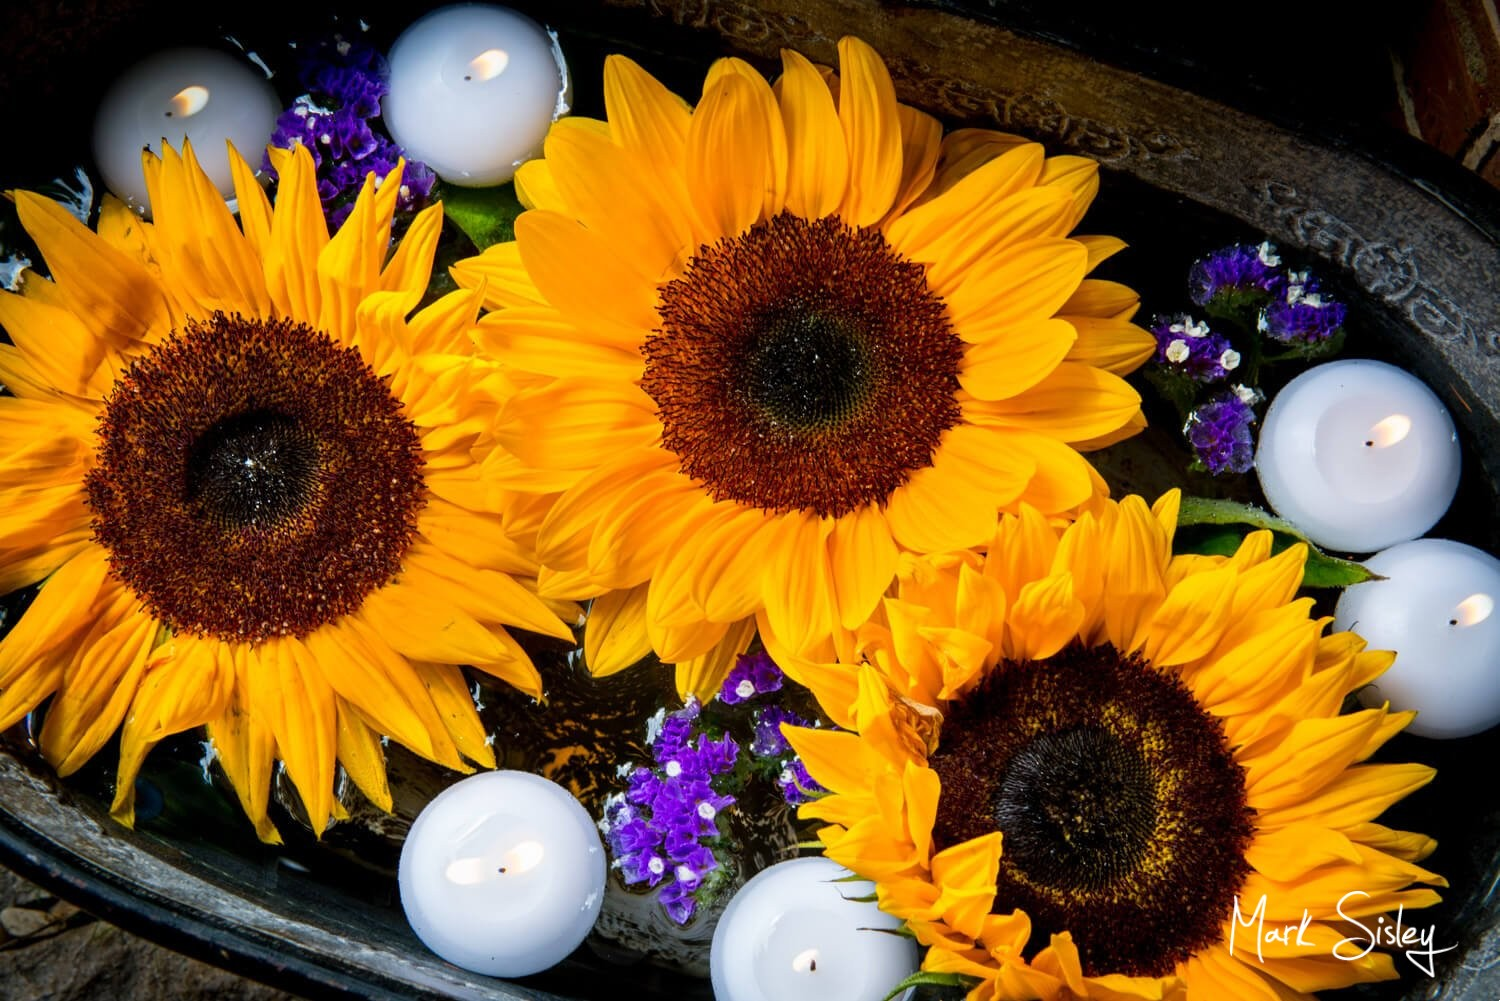 Dairy Waddesdon wedding photos of sunflower display